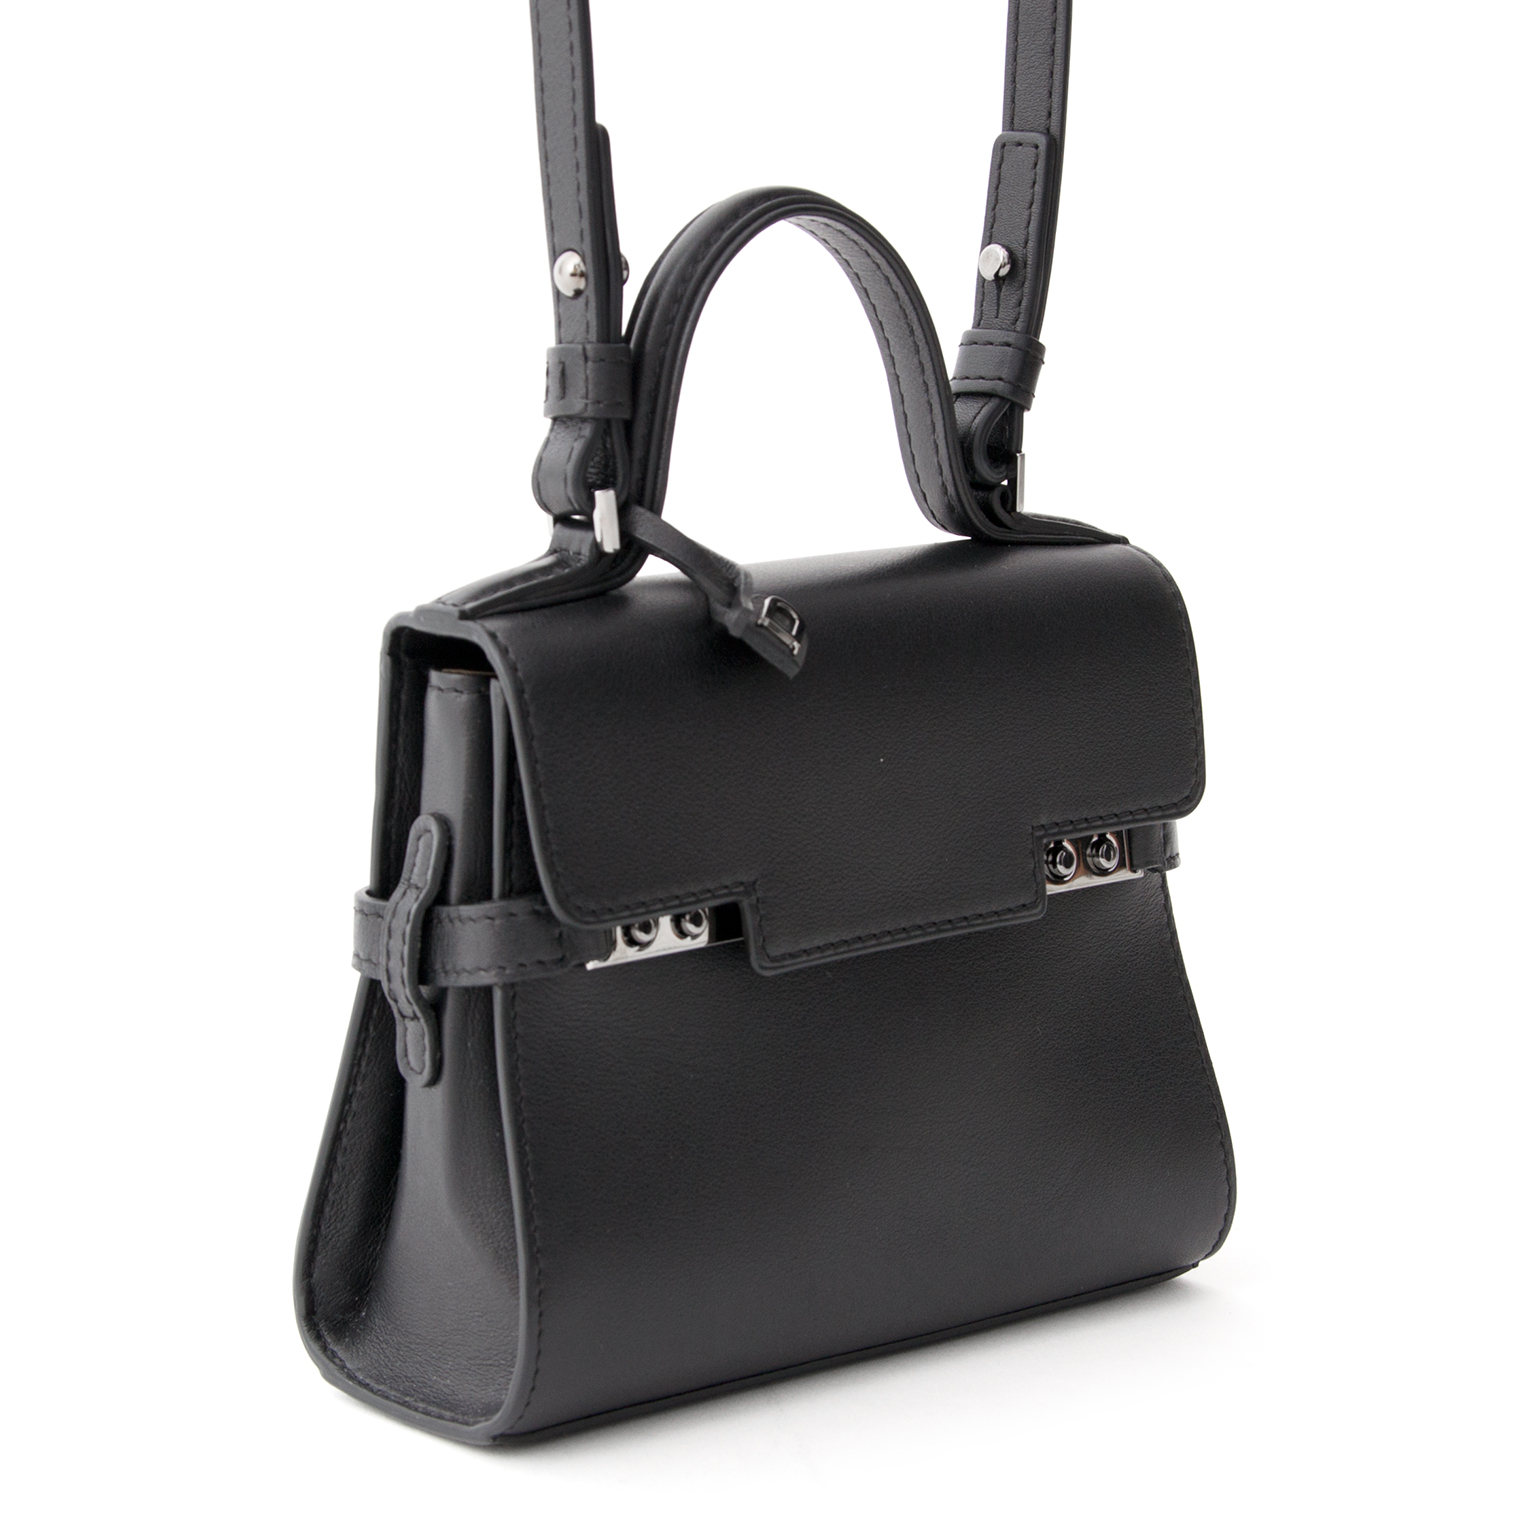 ba13c9ad819b Handmade in BRAND NEW Delvaux Tempête Micro Calf Souple Black. Buy  authentic preloved Delvaux bags at LabelLOV s